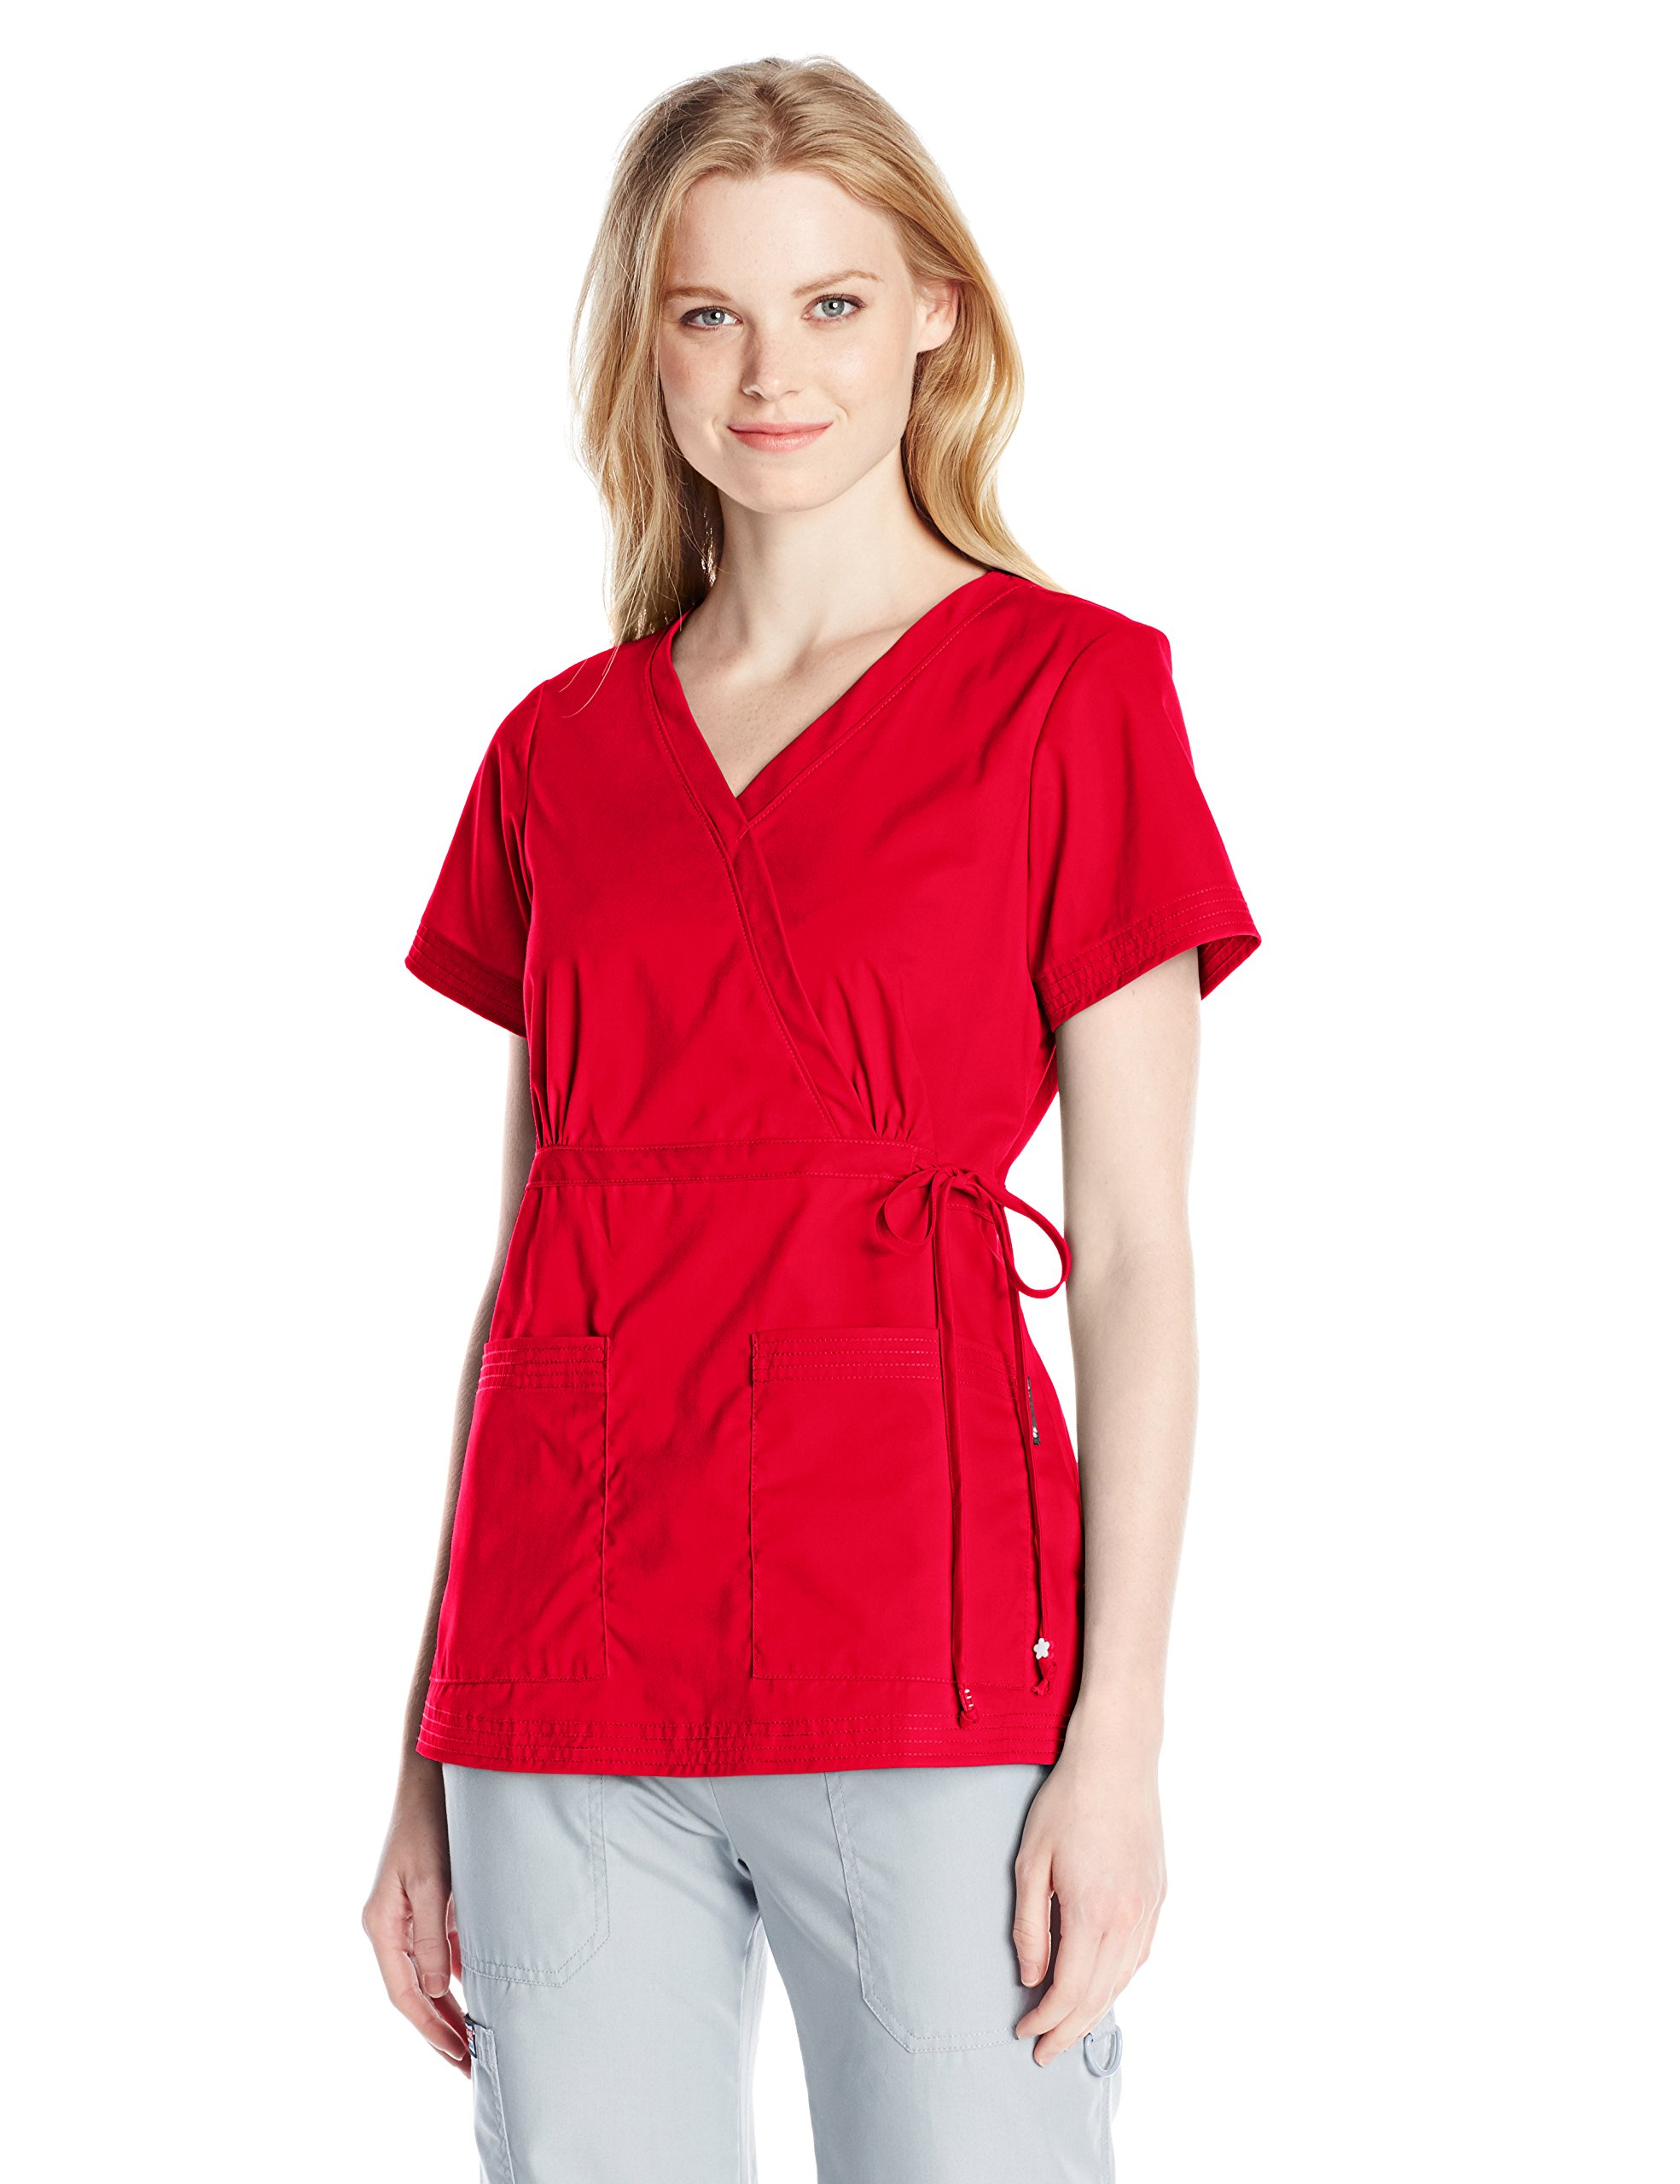 KOI Medical Scrubs Katelyn Top Ruby X-Small